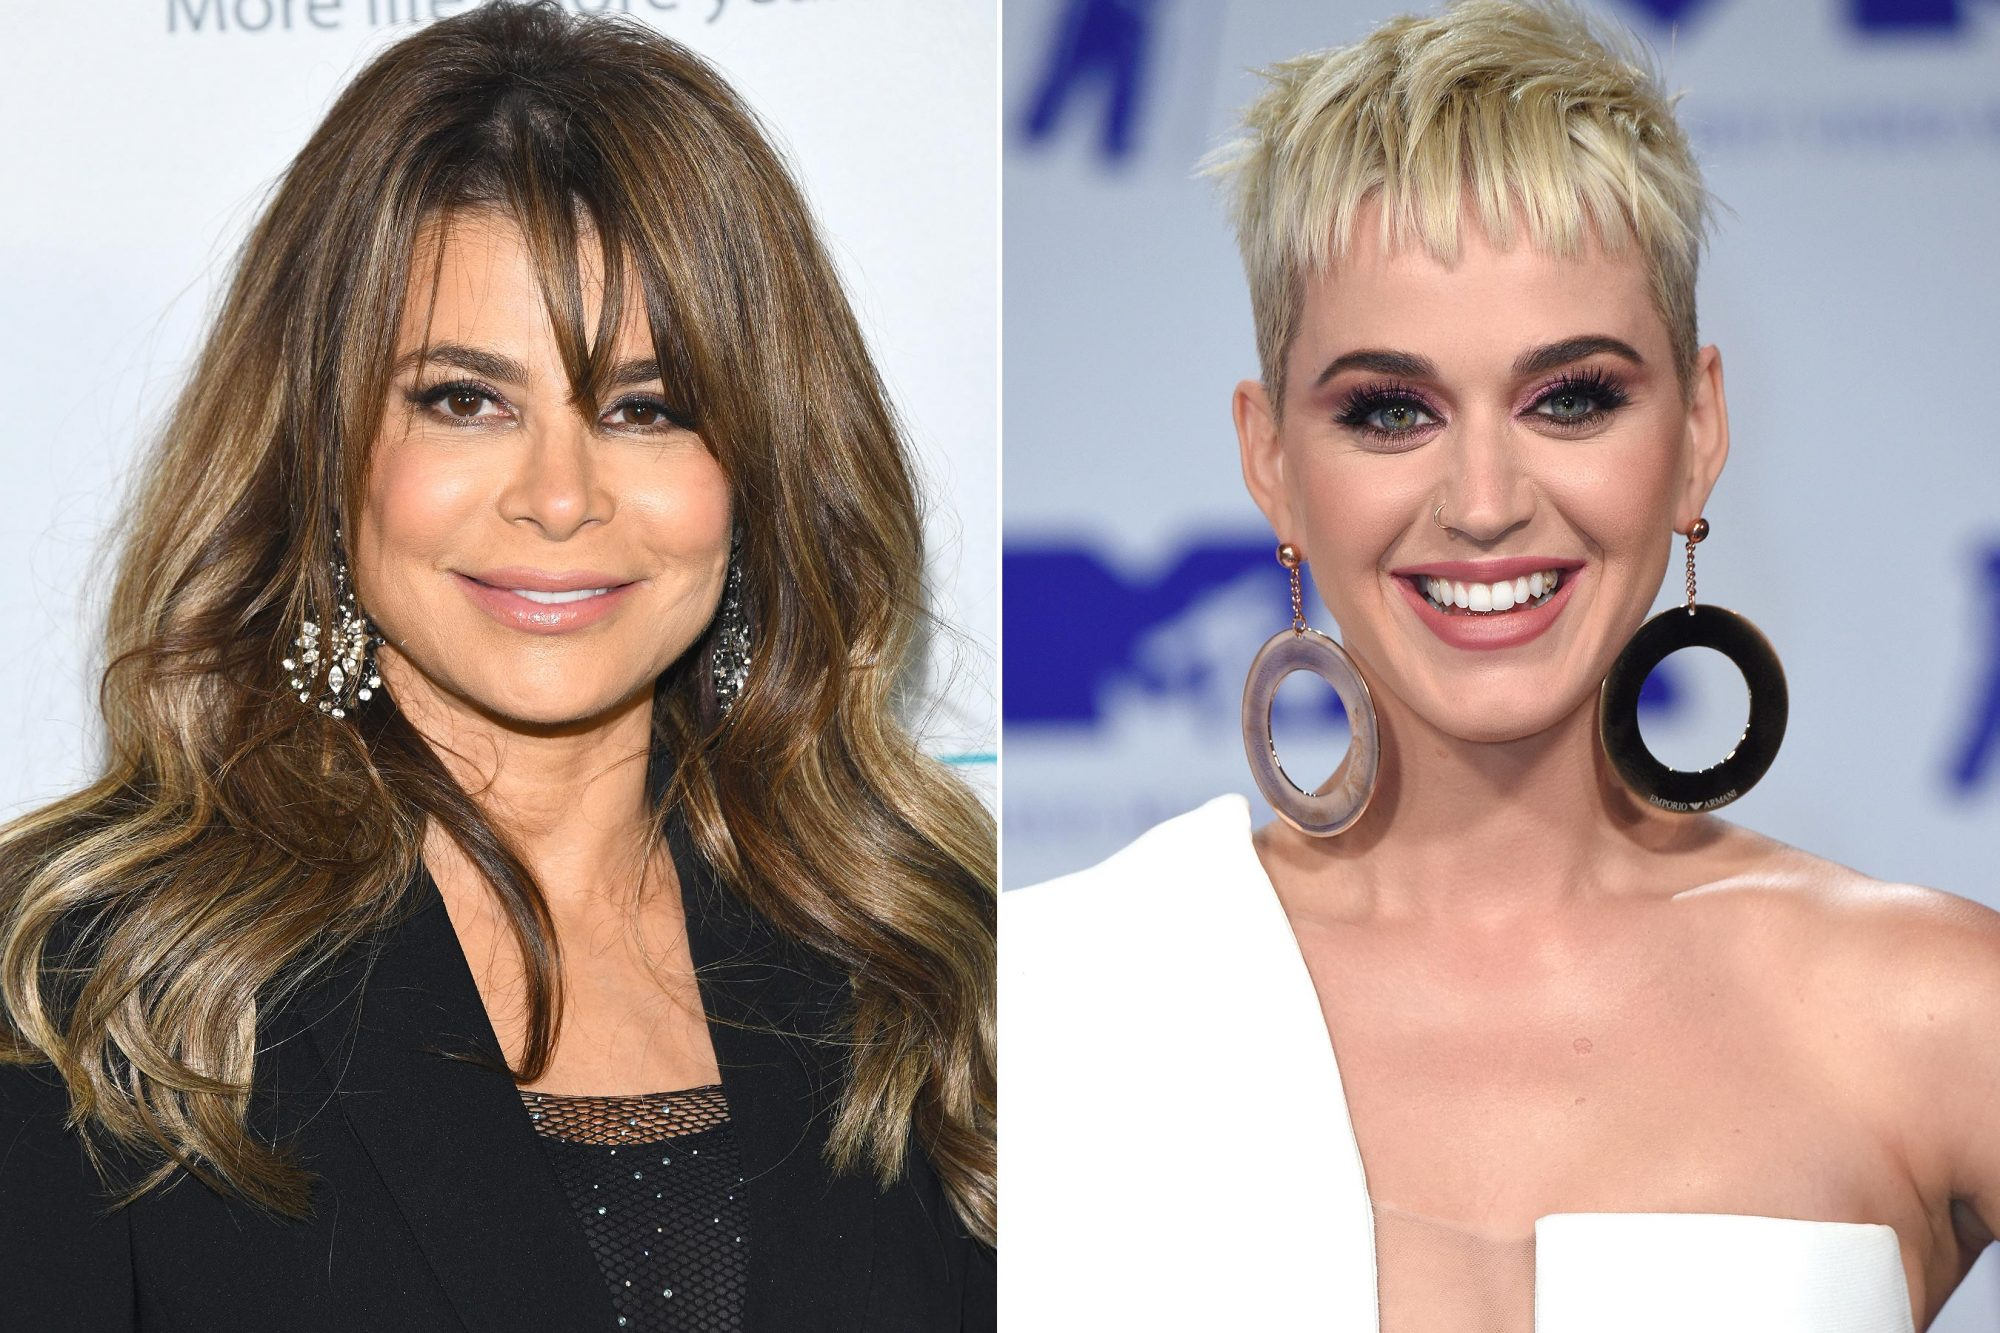 Paula Abdul, Katy Perry